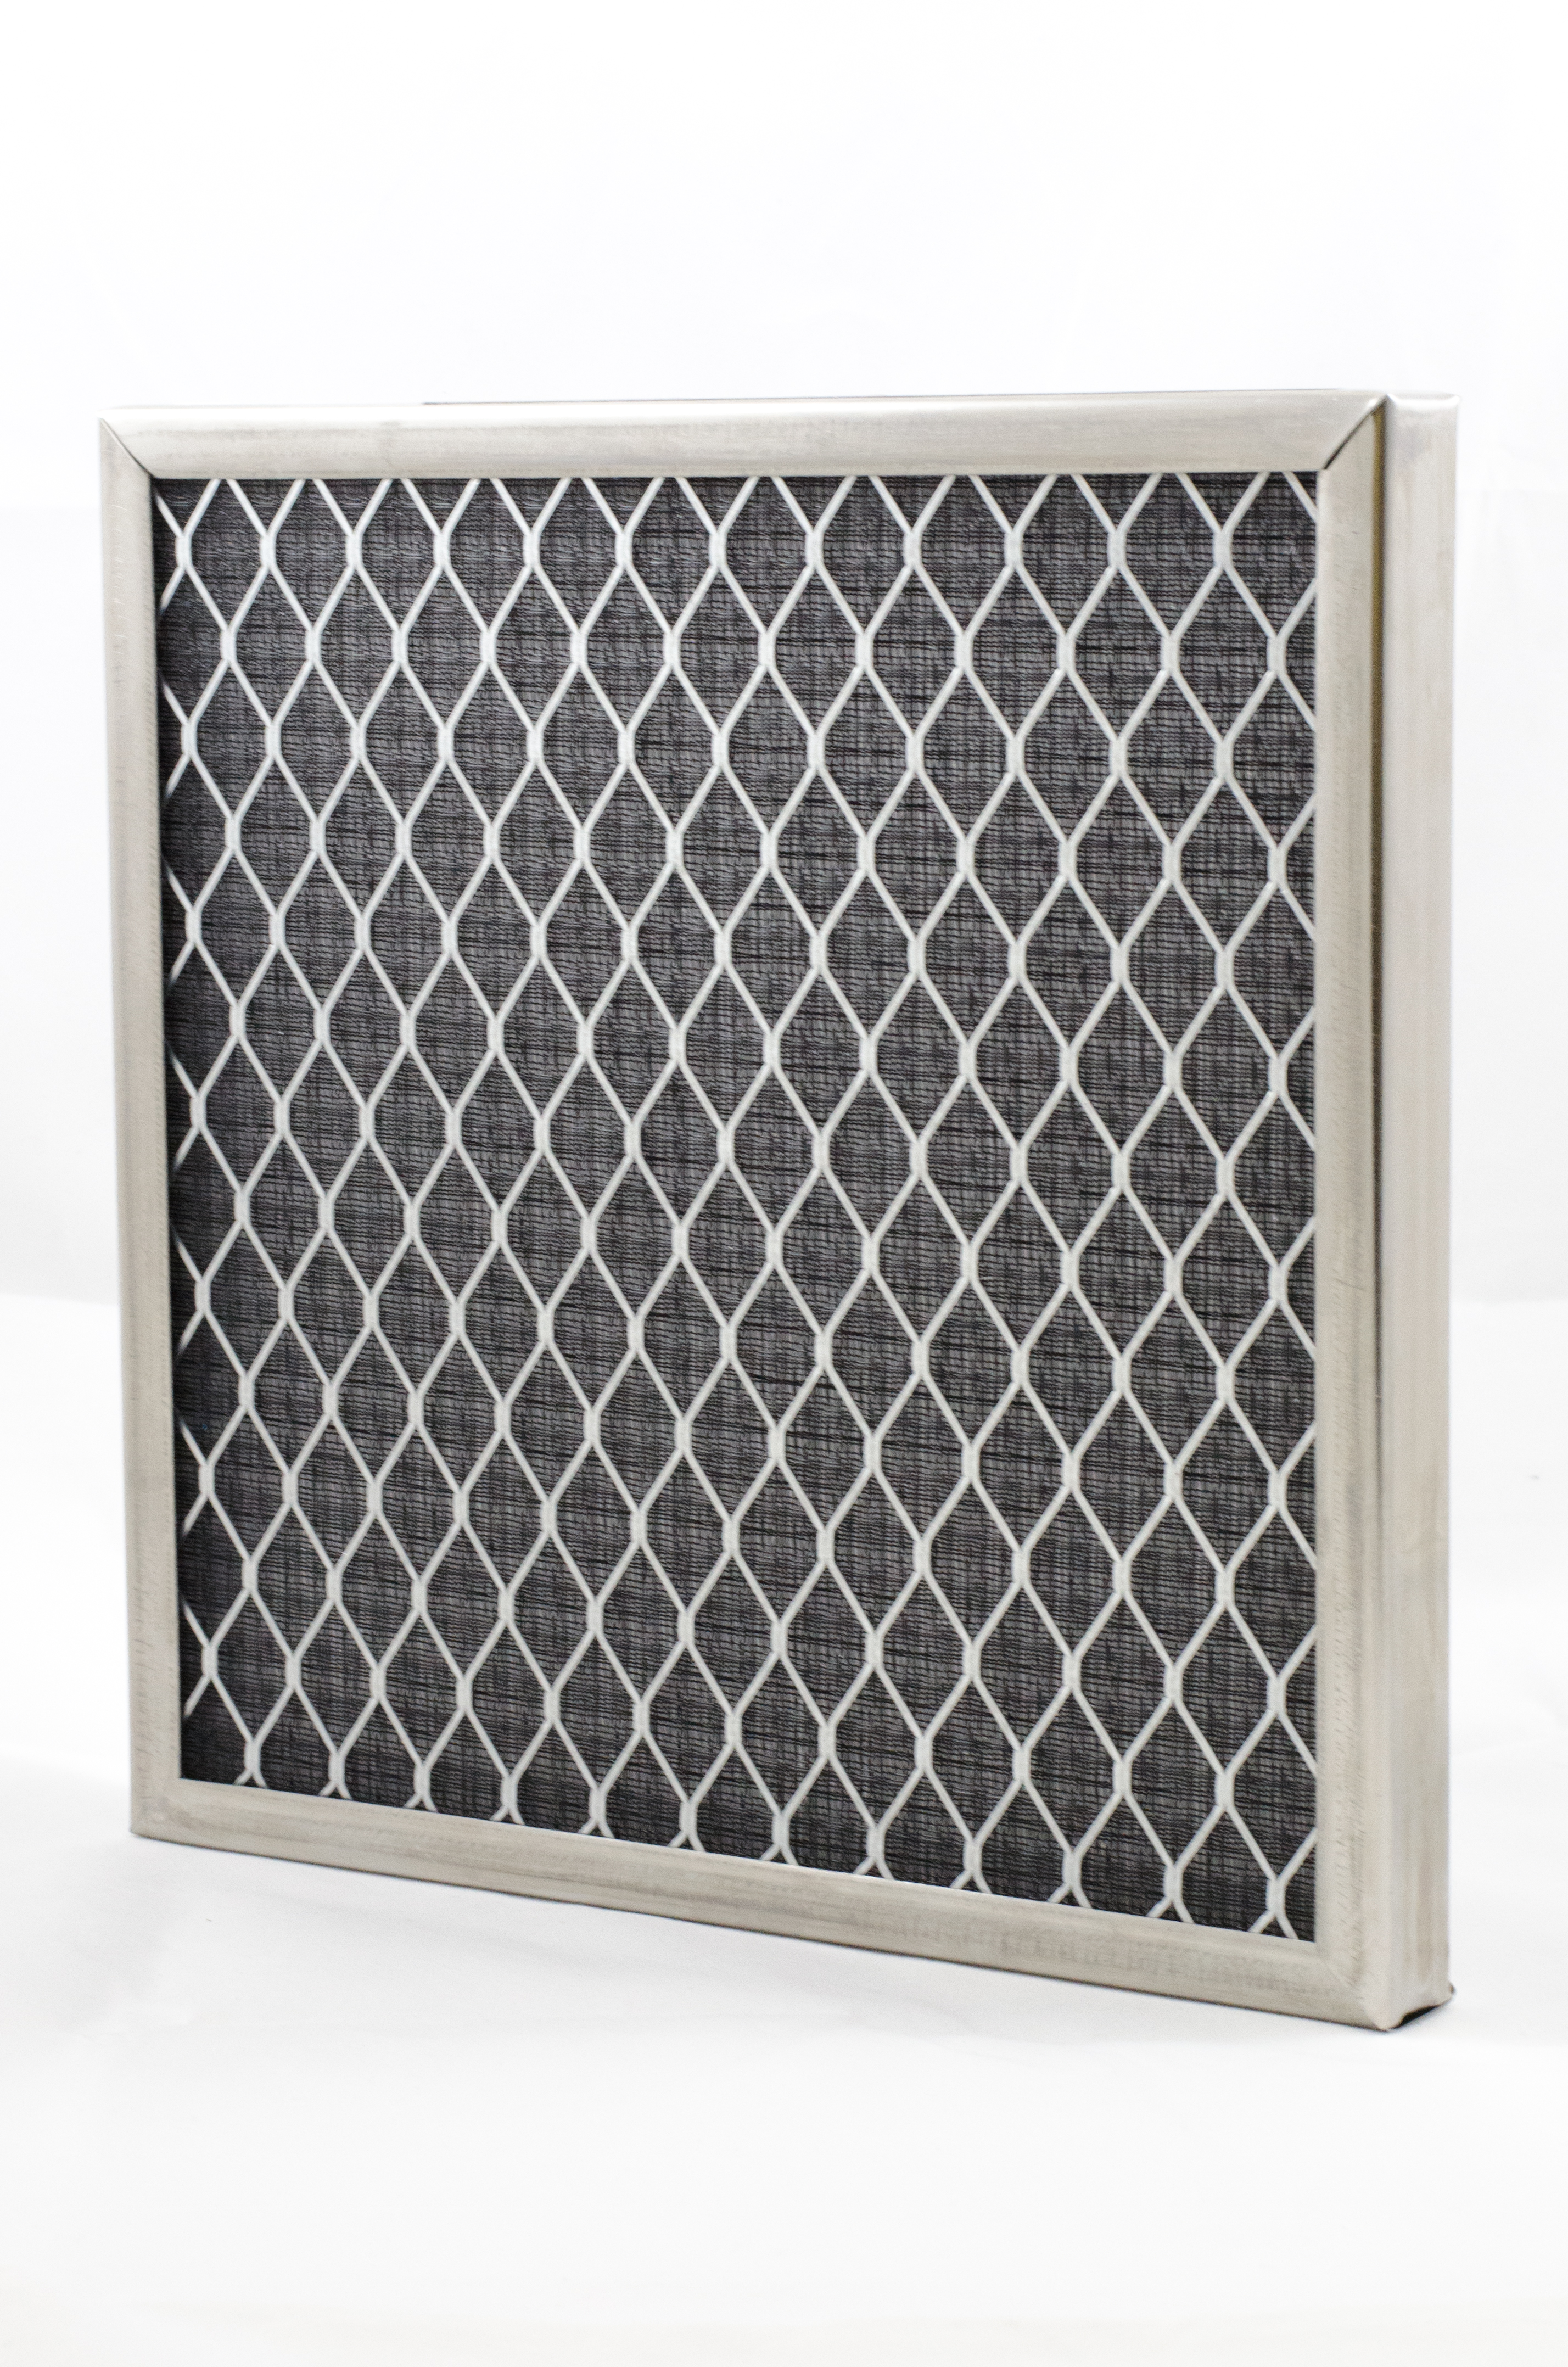 2313496a9f9 What are standard air filter sizes